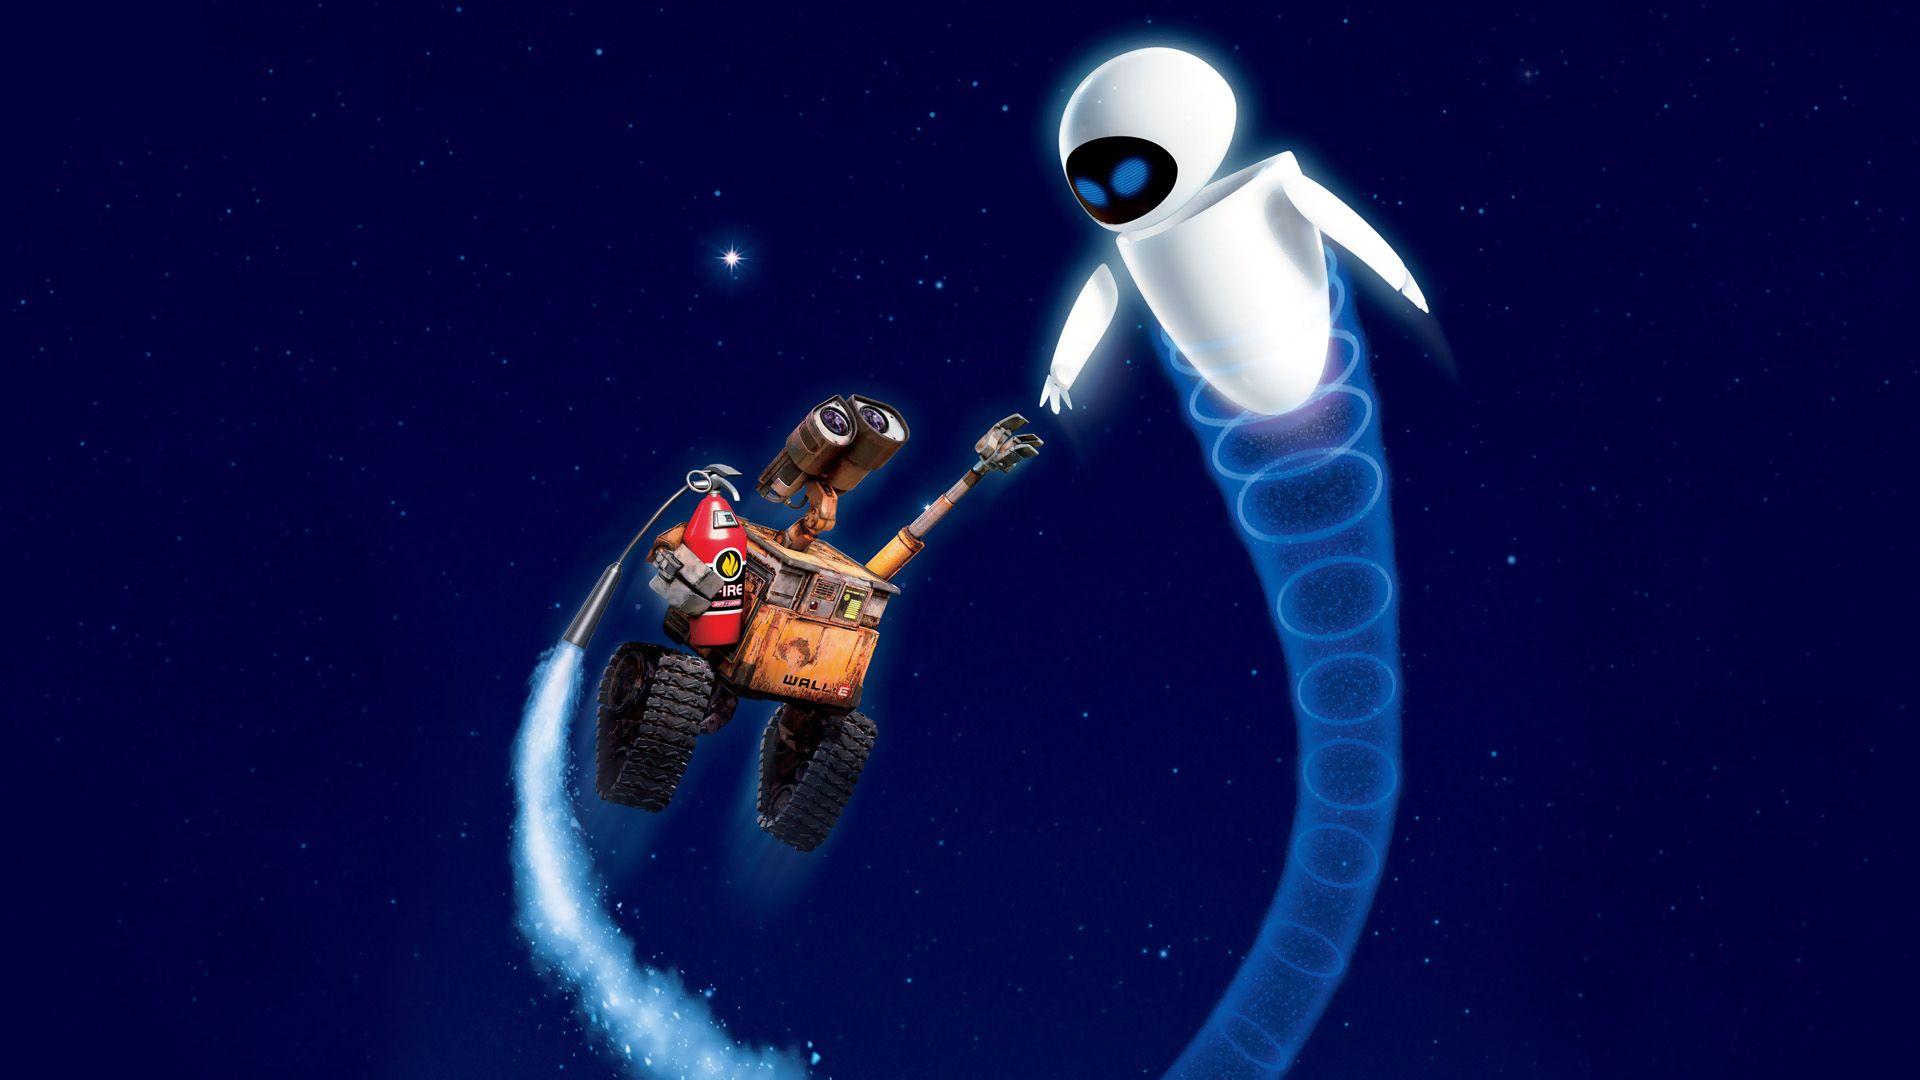 Wall E Wallpapers High Quality Download Free Wall E Best Dystopian Movies Wall E Eve